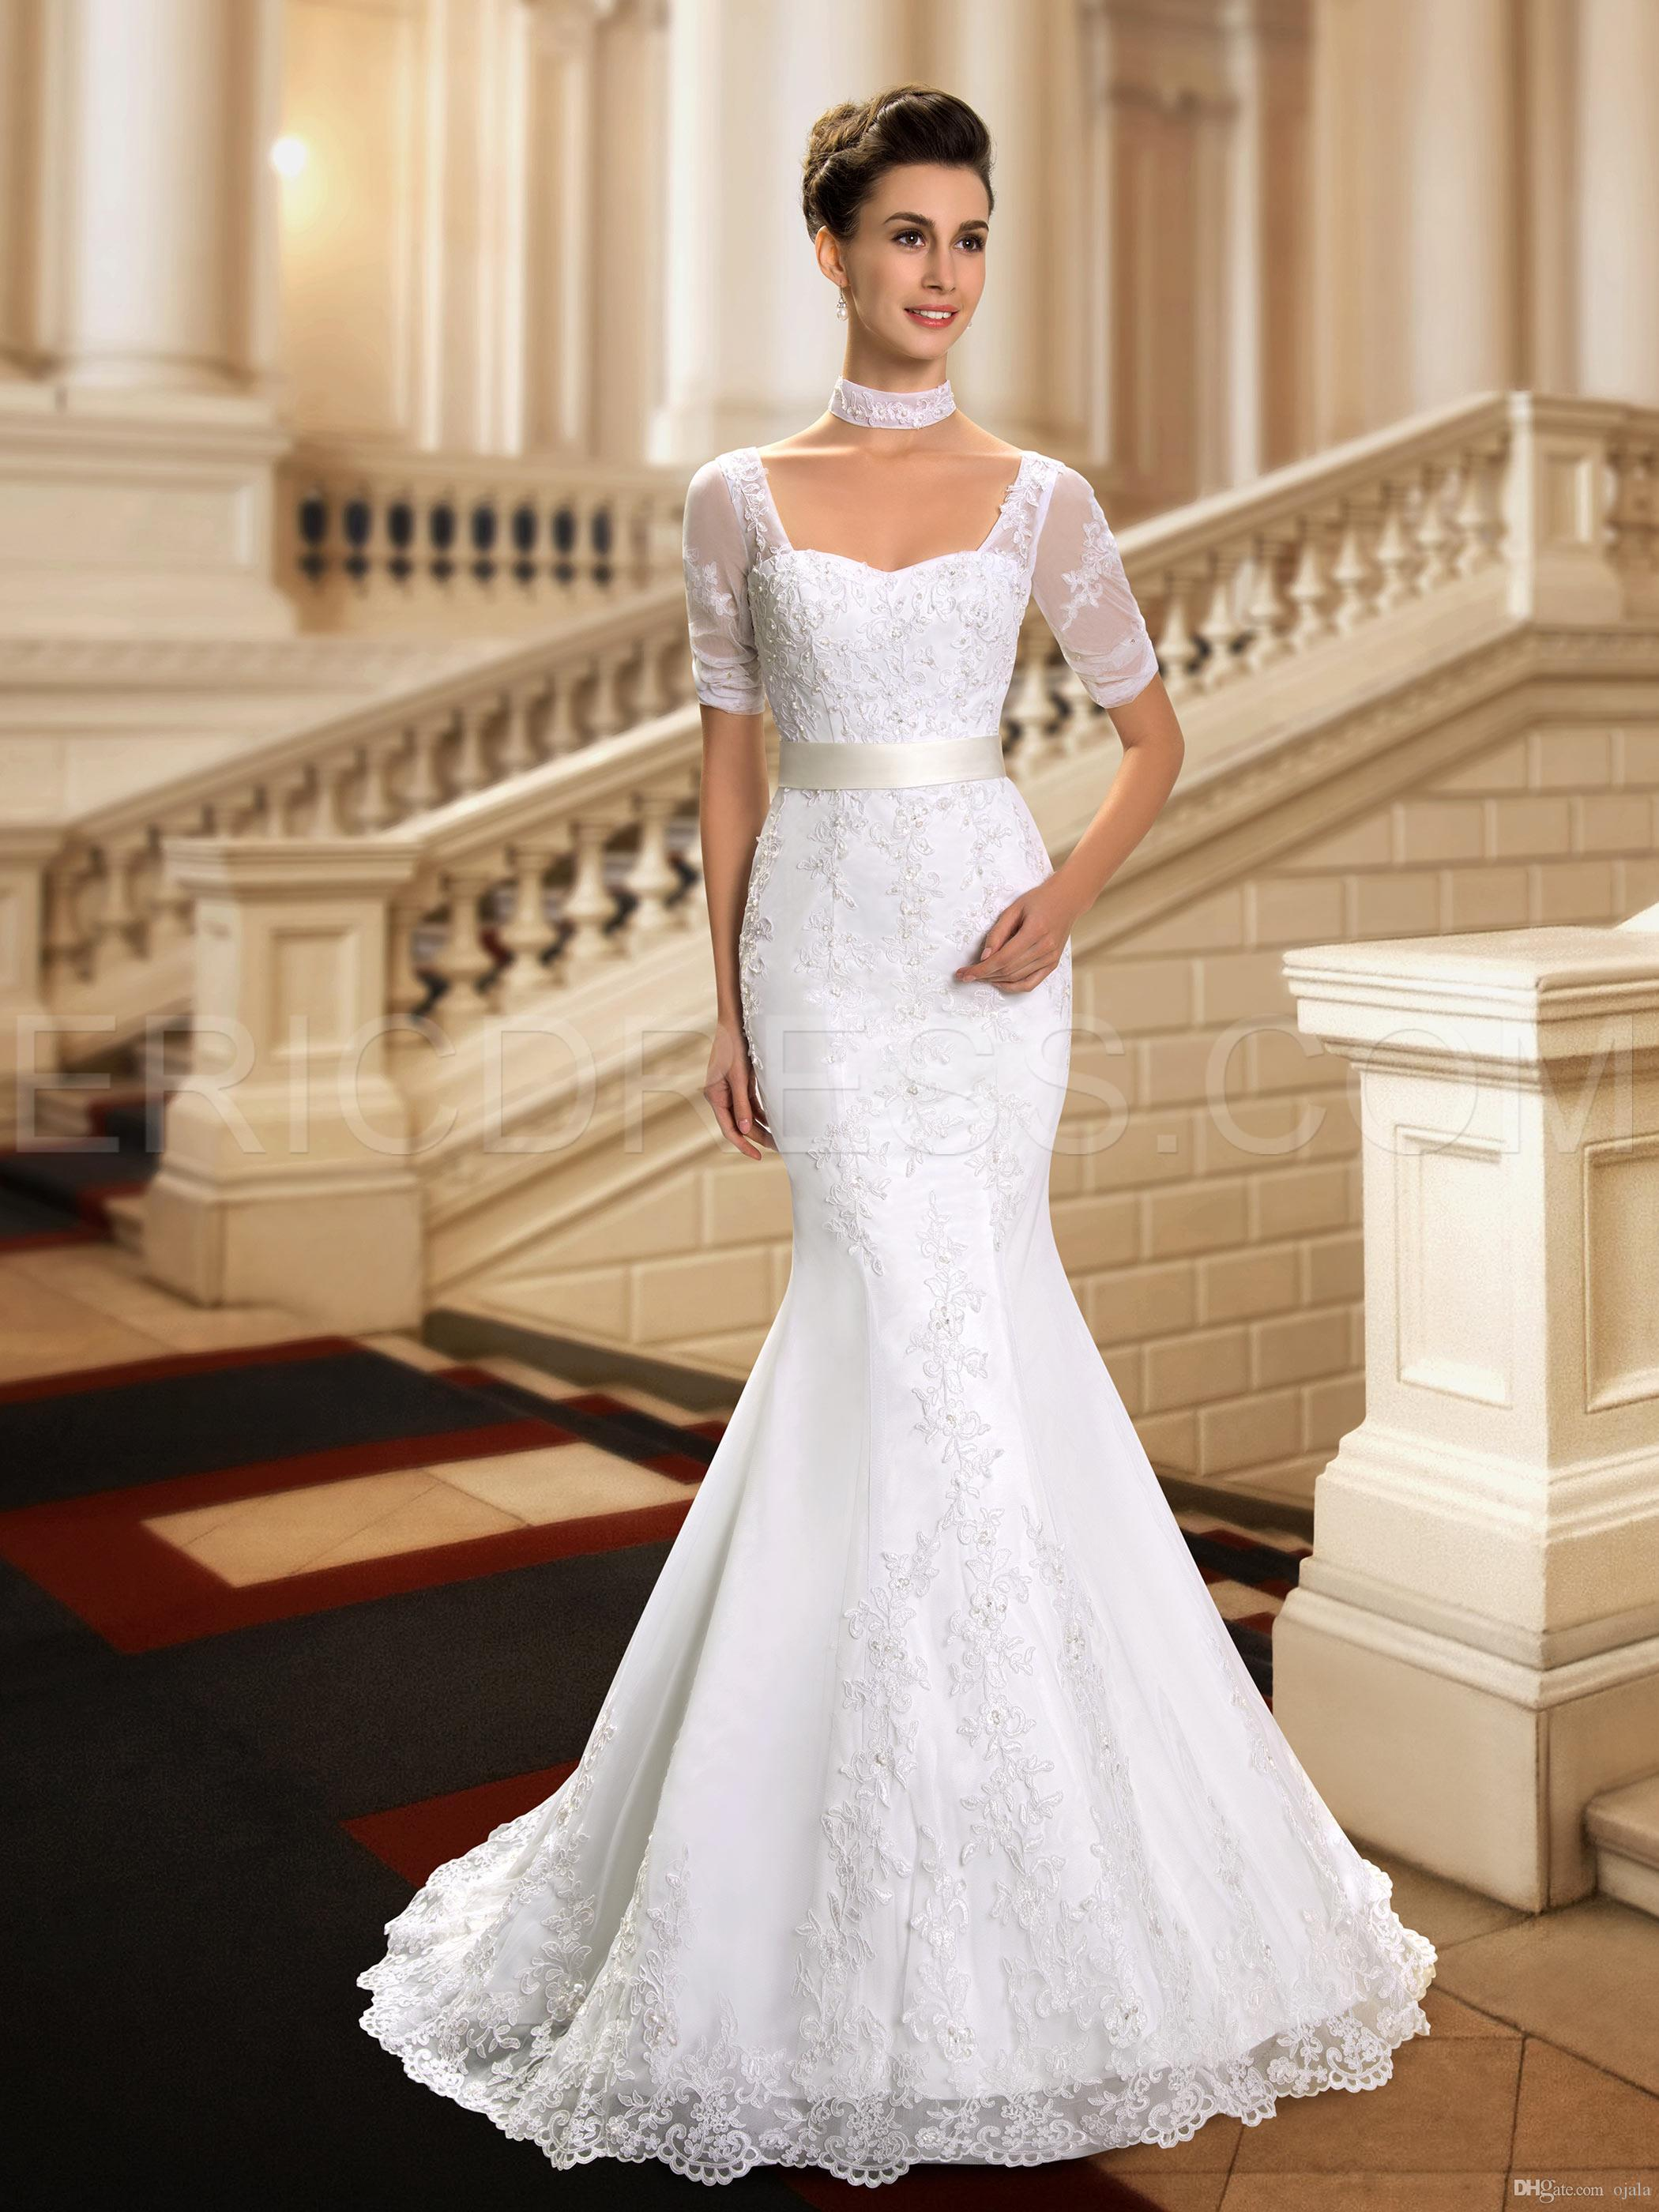 Nwd24 2015 fashionable of bride short sleeve lace mermaid wedding nwd24 2015 fashionable of bride short sleeve lace mermaid wedding dress fish tail plus size custom made bridal gown dresses wedding dresses designers ombrellifo Choice Image